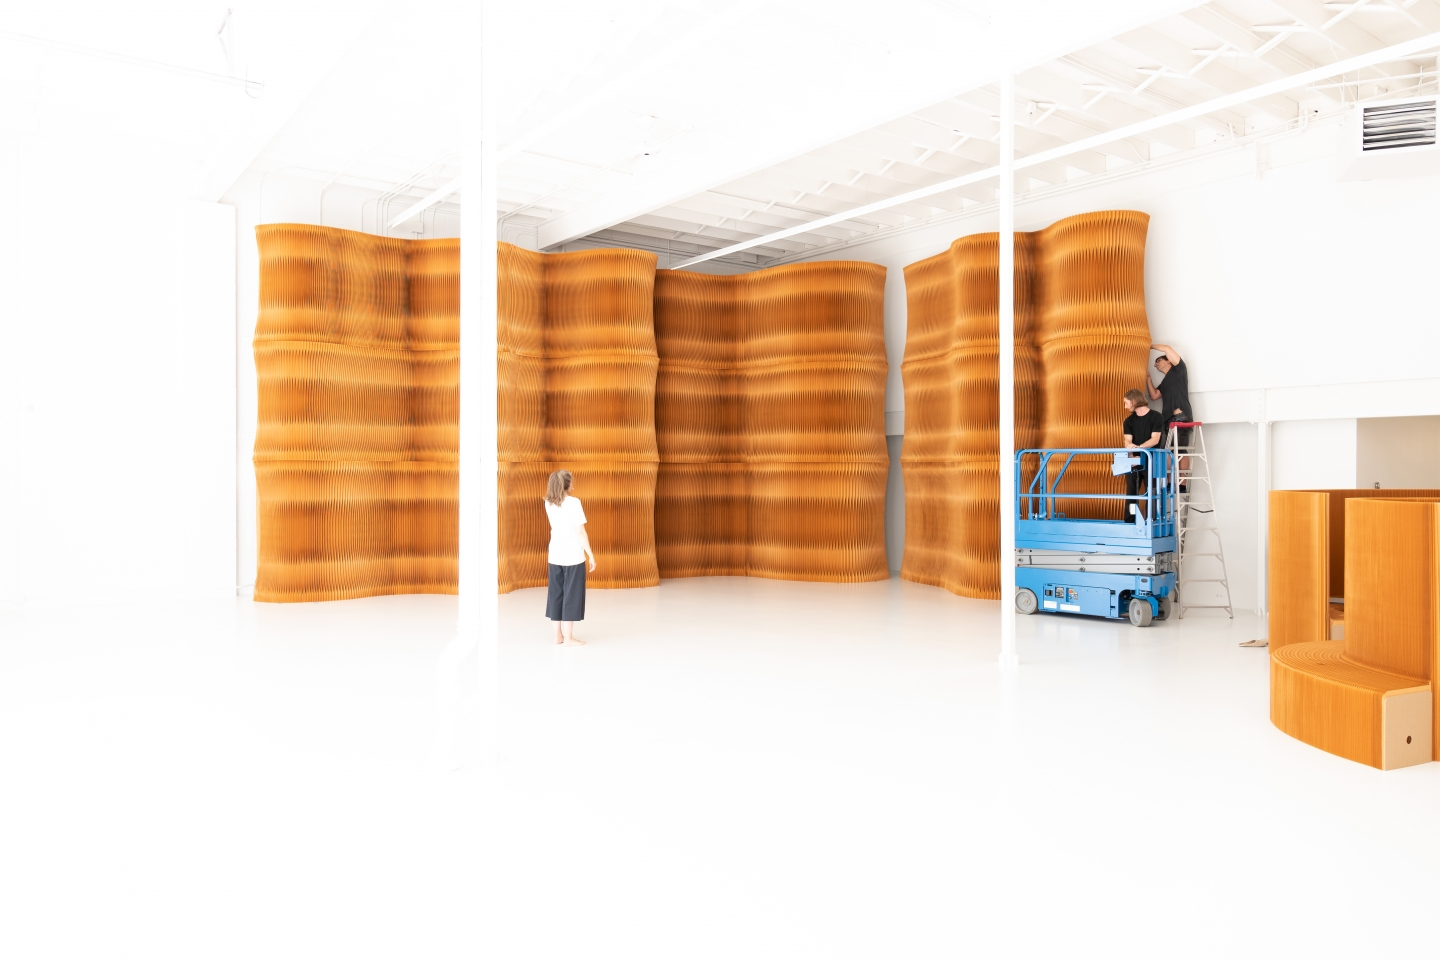 paper architecture built of acoustic partitions that can be made into any shape. These paper folding walls make for sculptural backdrops as well as practical privacy screens.